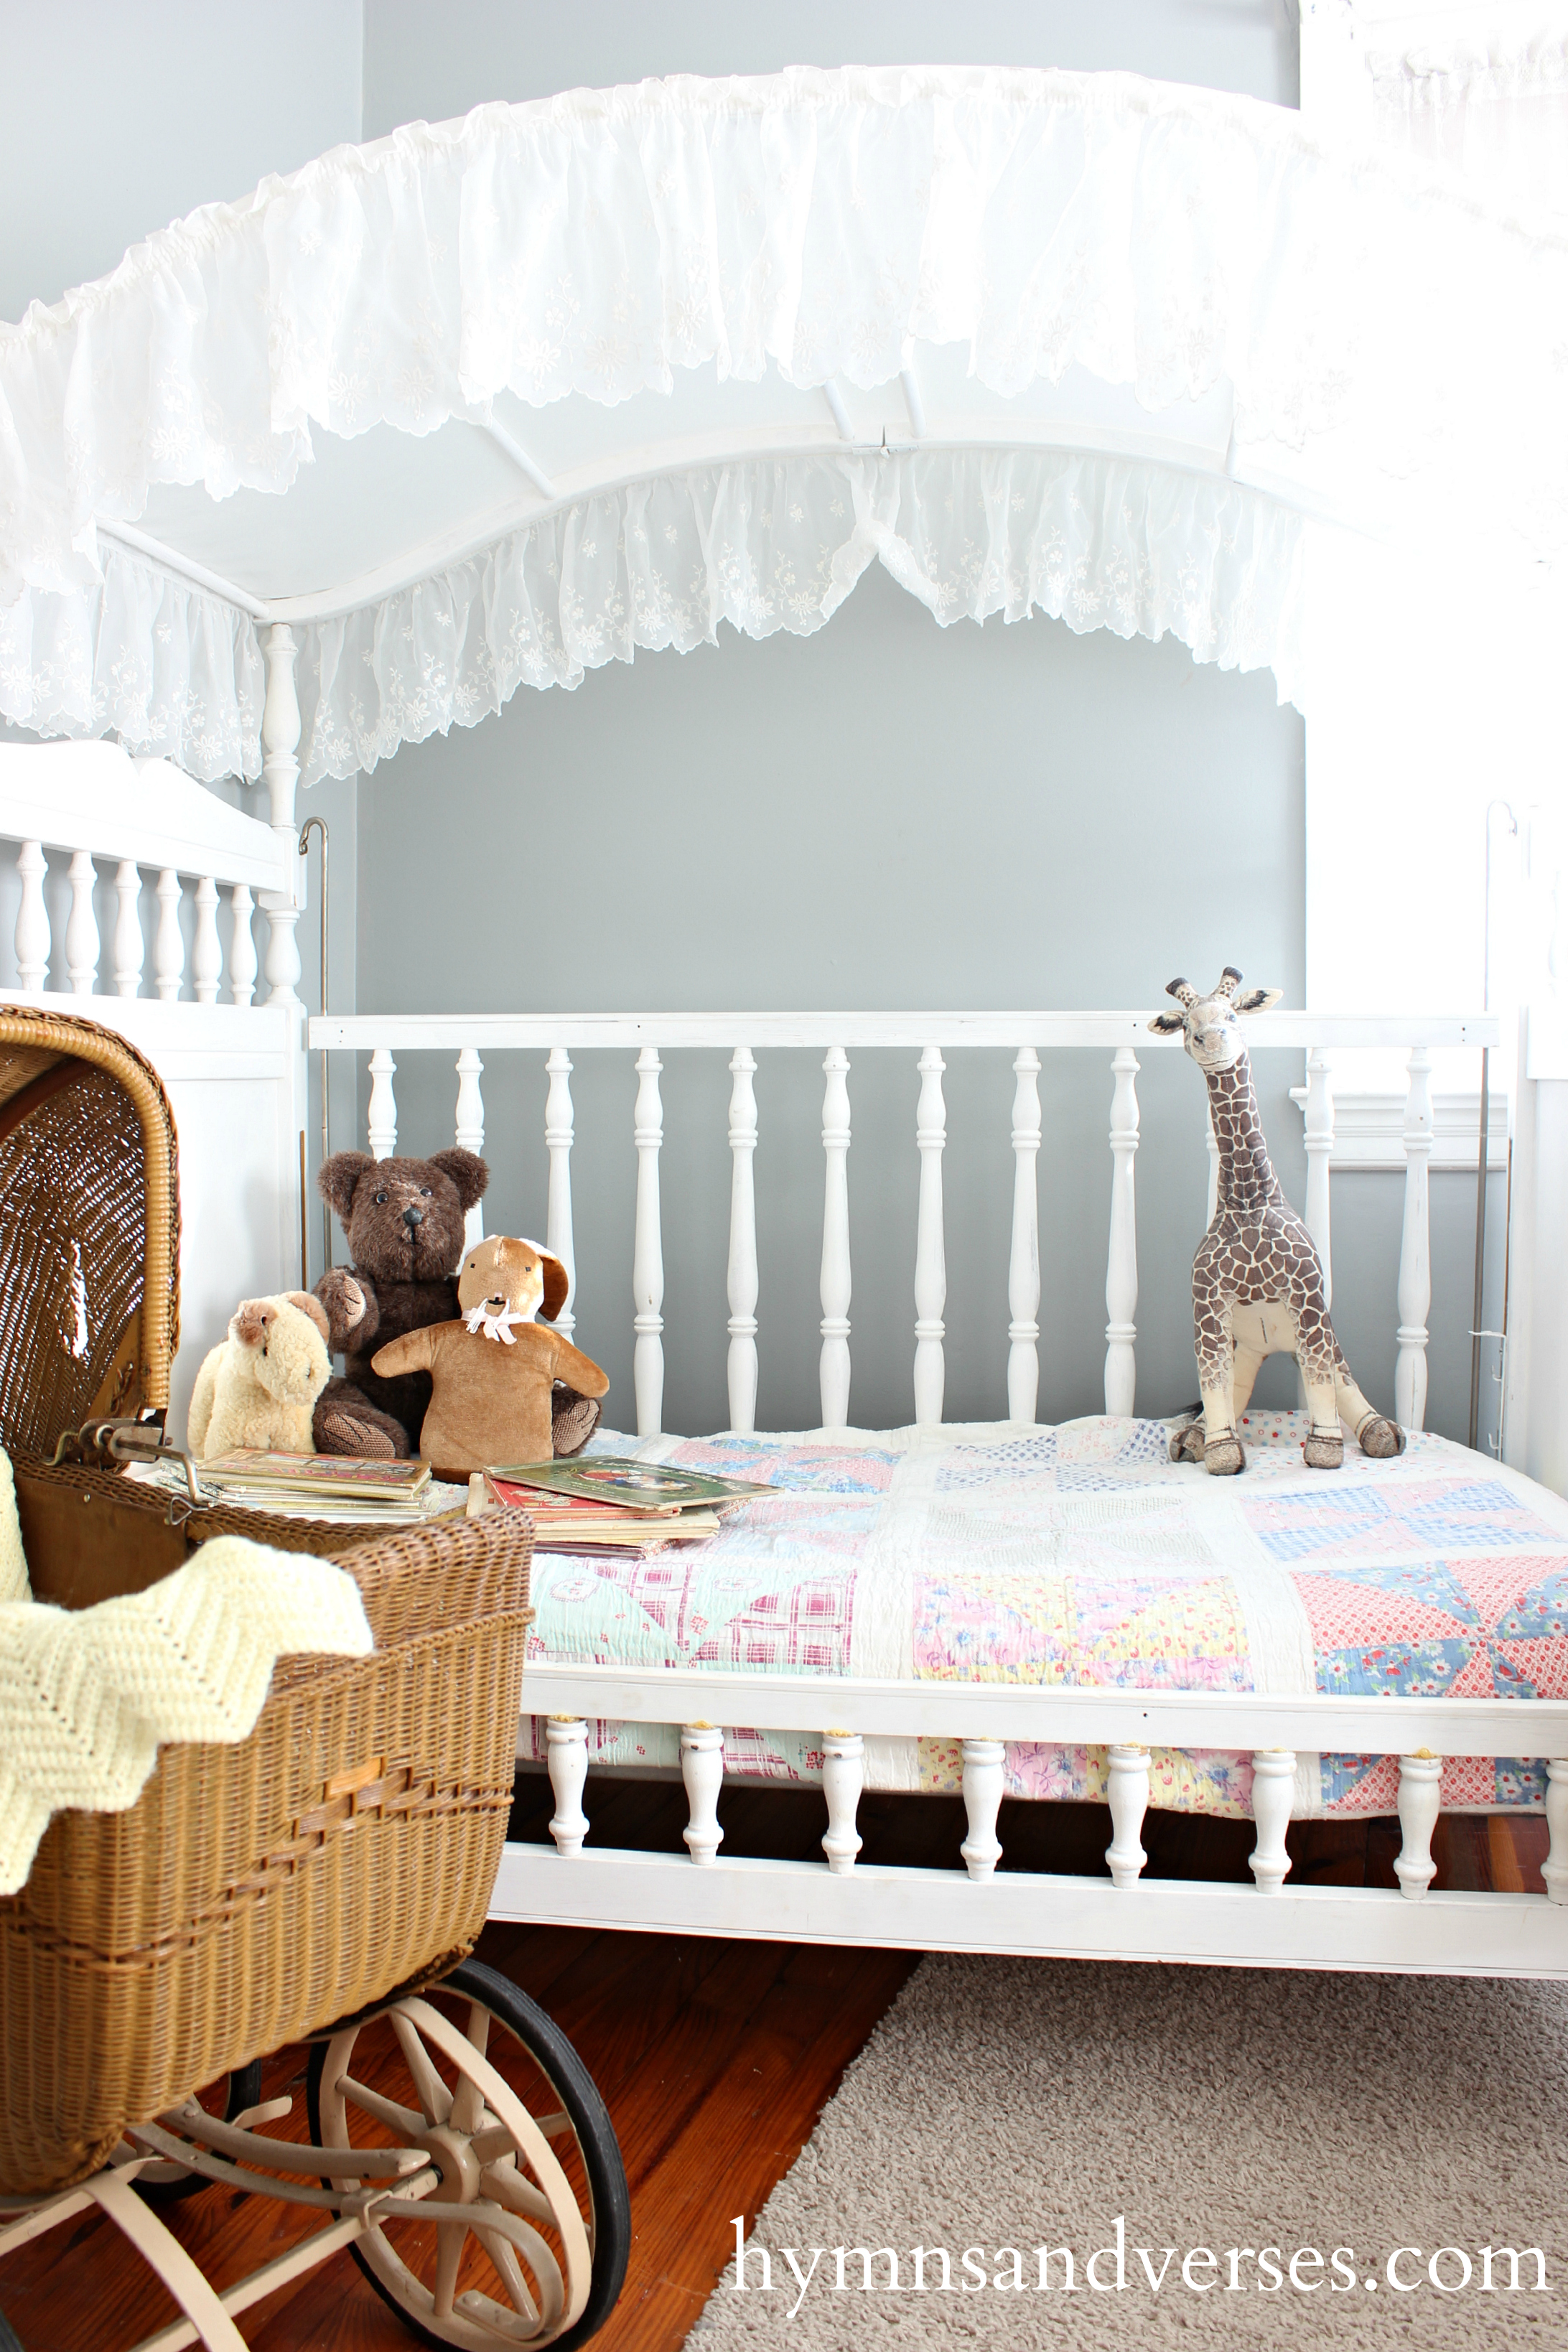 Canopy Crib Becomes a Cozy Daybed - Hymns and Verses